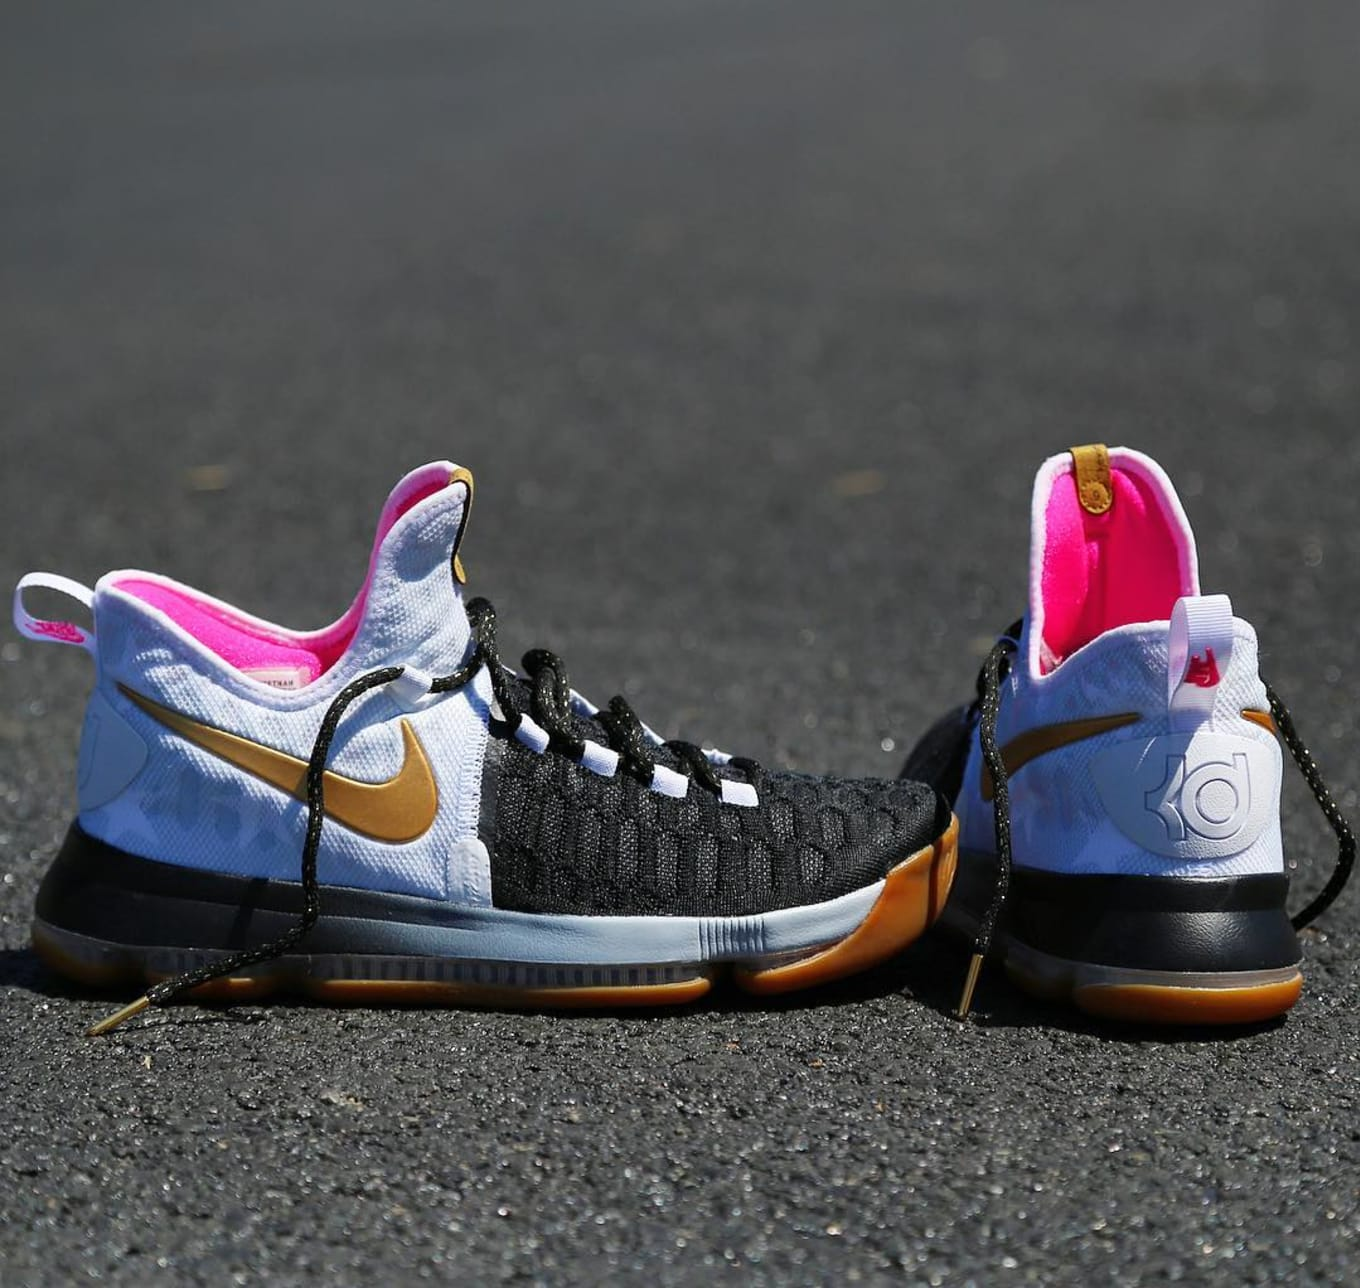 finest selection ee810 297e1 NIKEiD KD 9 Designs | Sole Collector